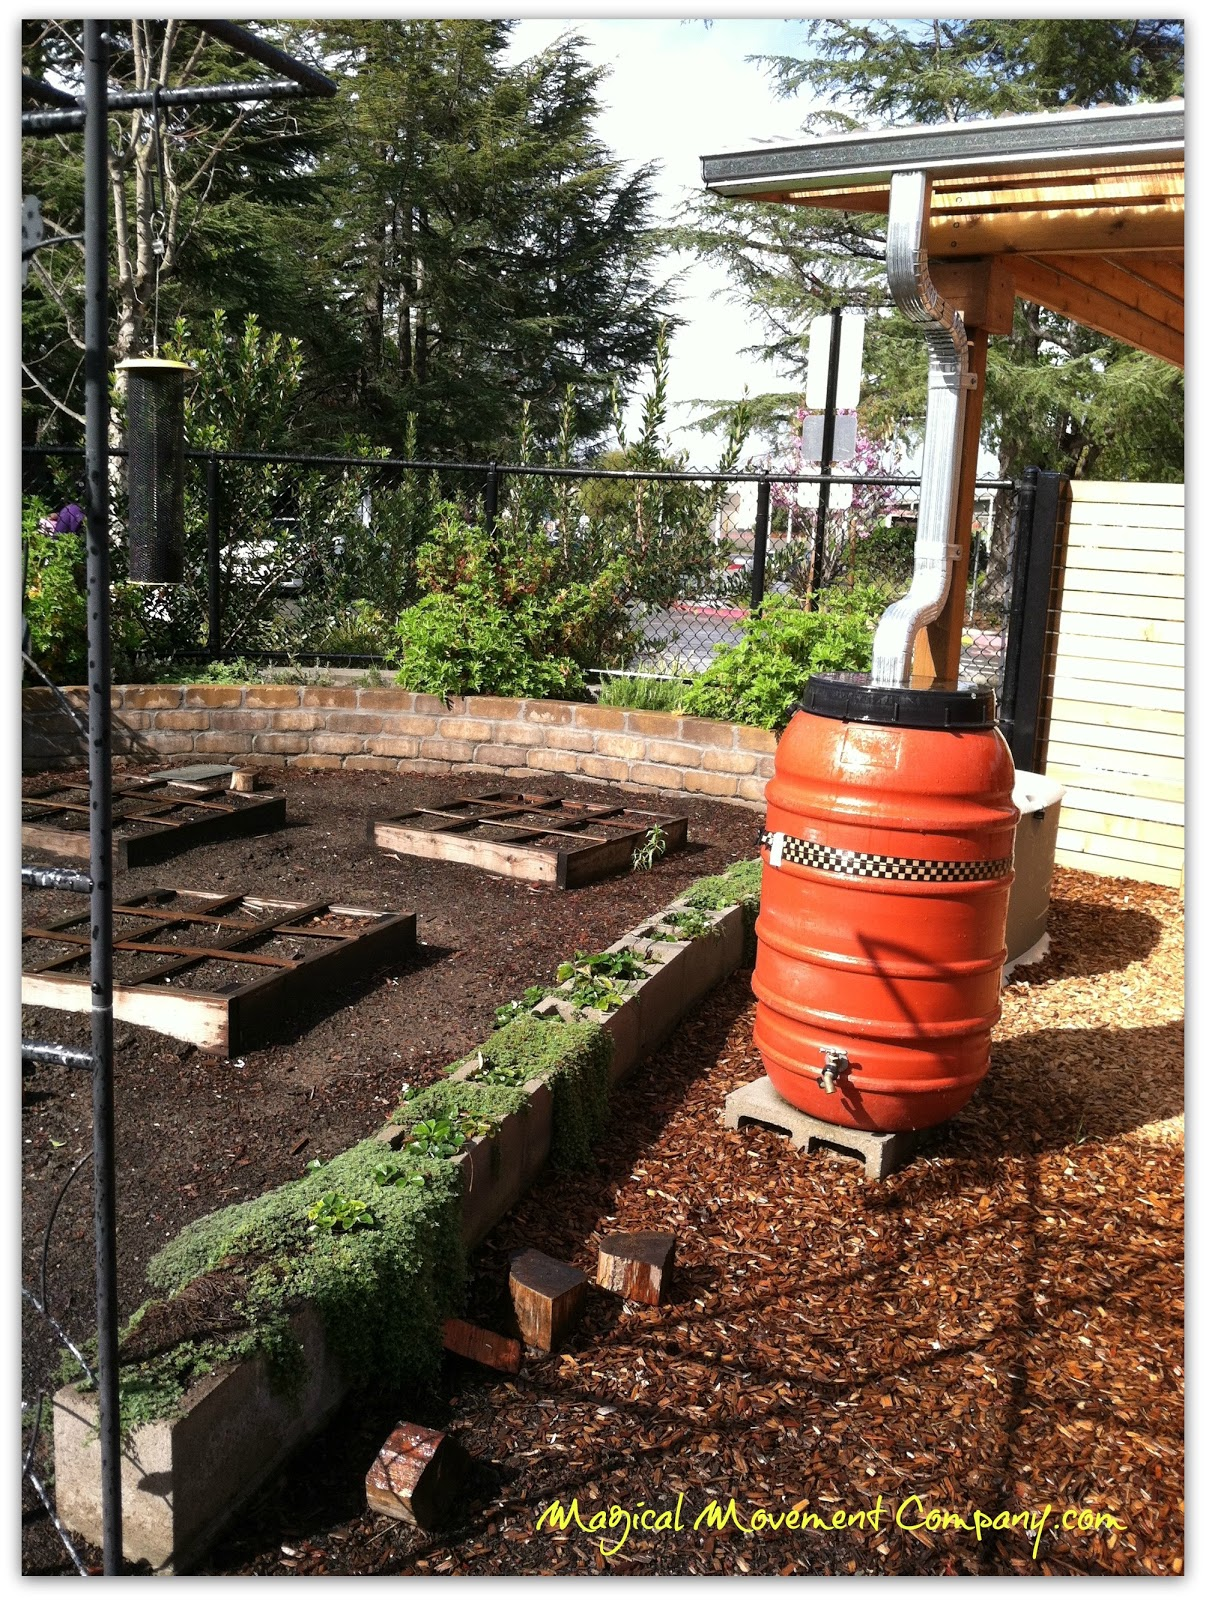 Outdoorsy Montessori How To Design A Square Foot Garden With Children Magical Movement